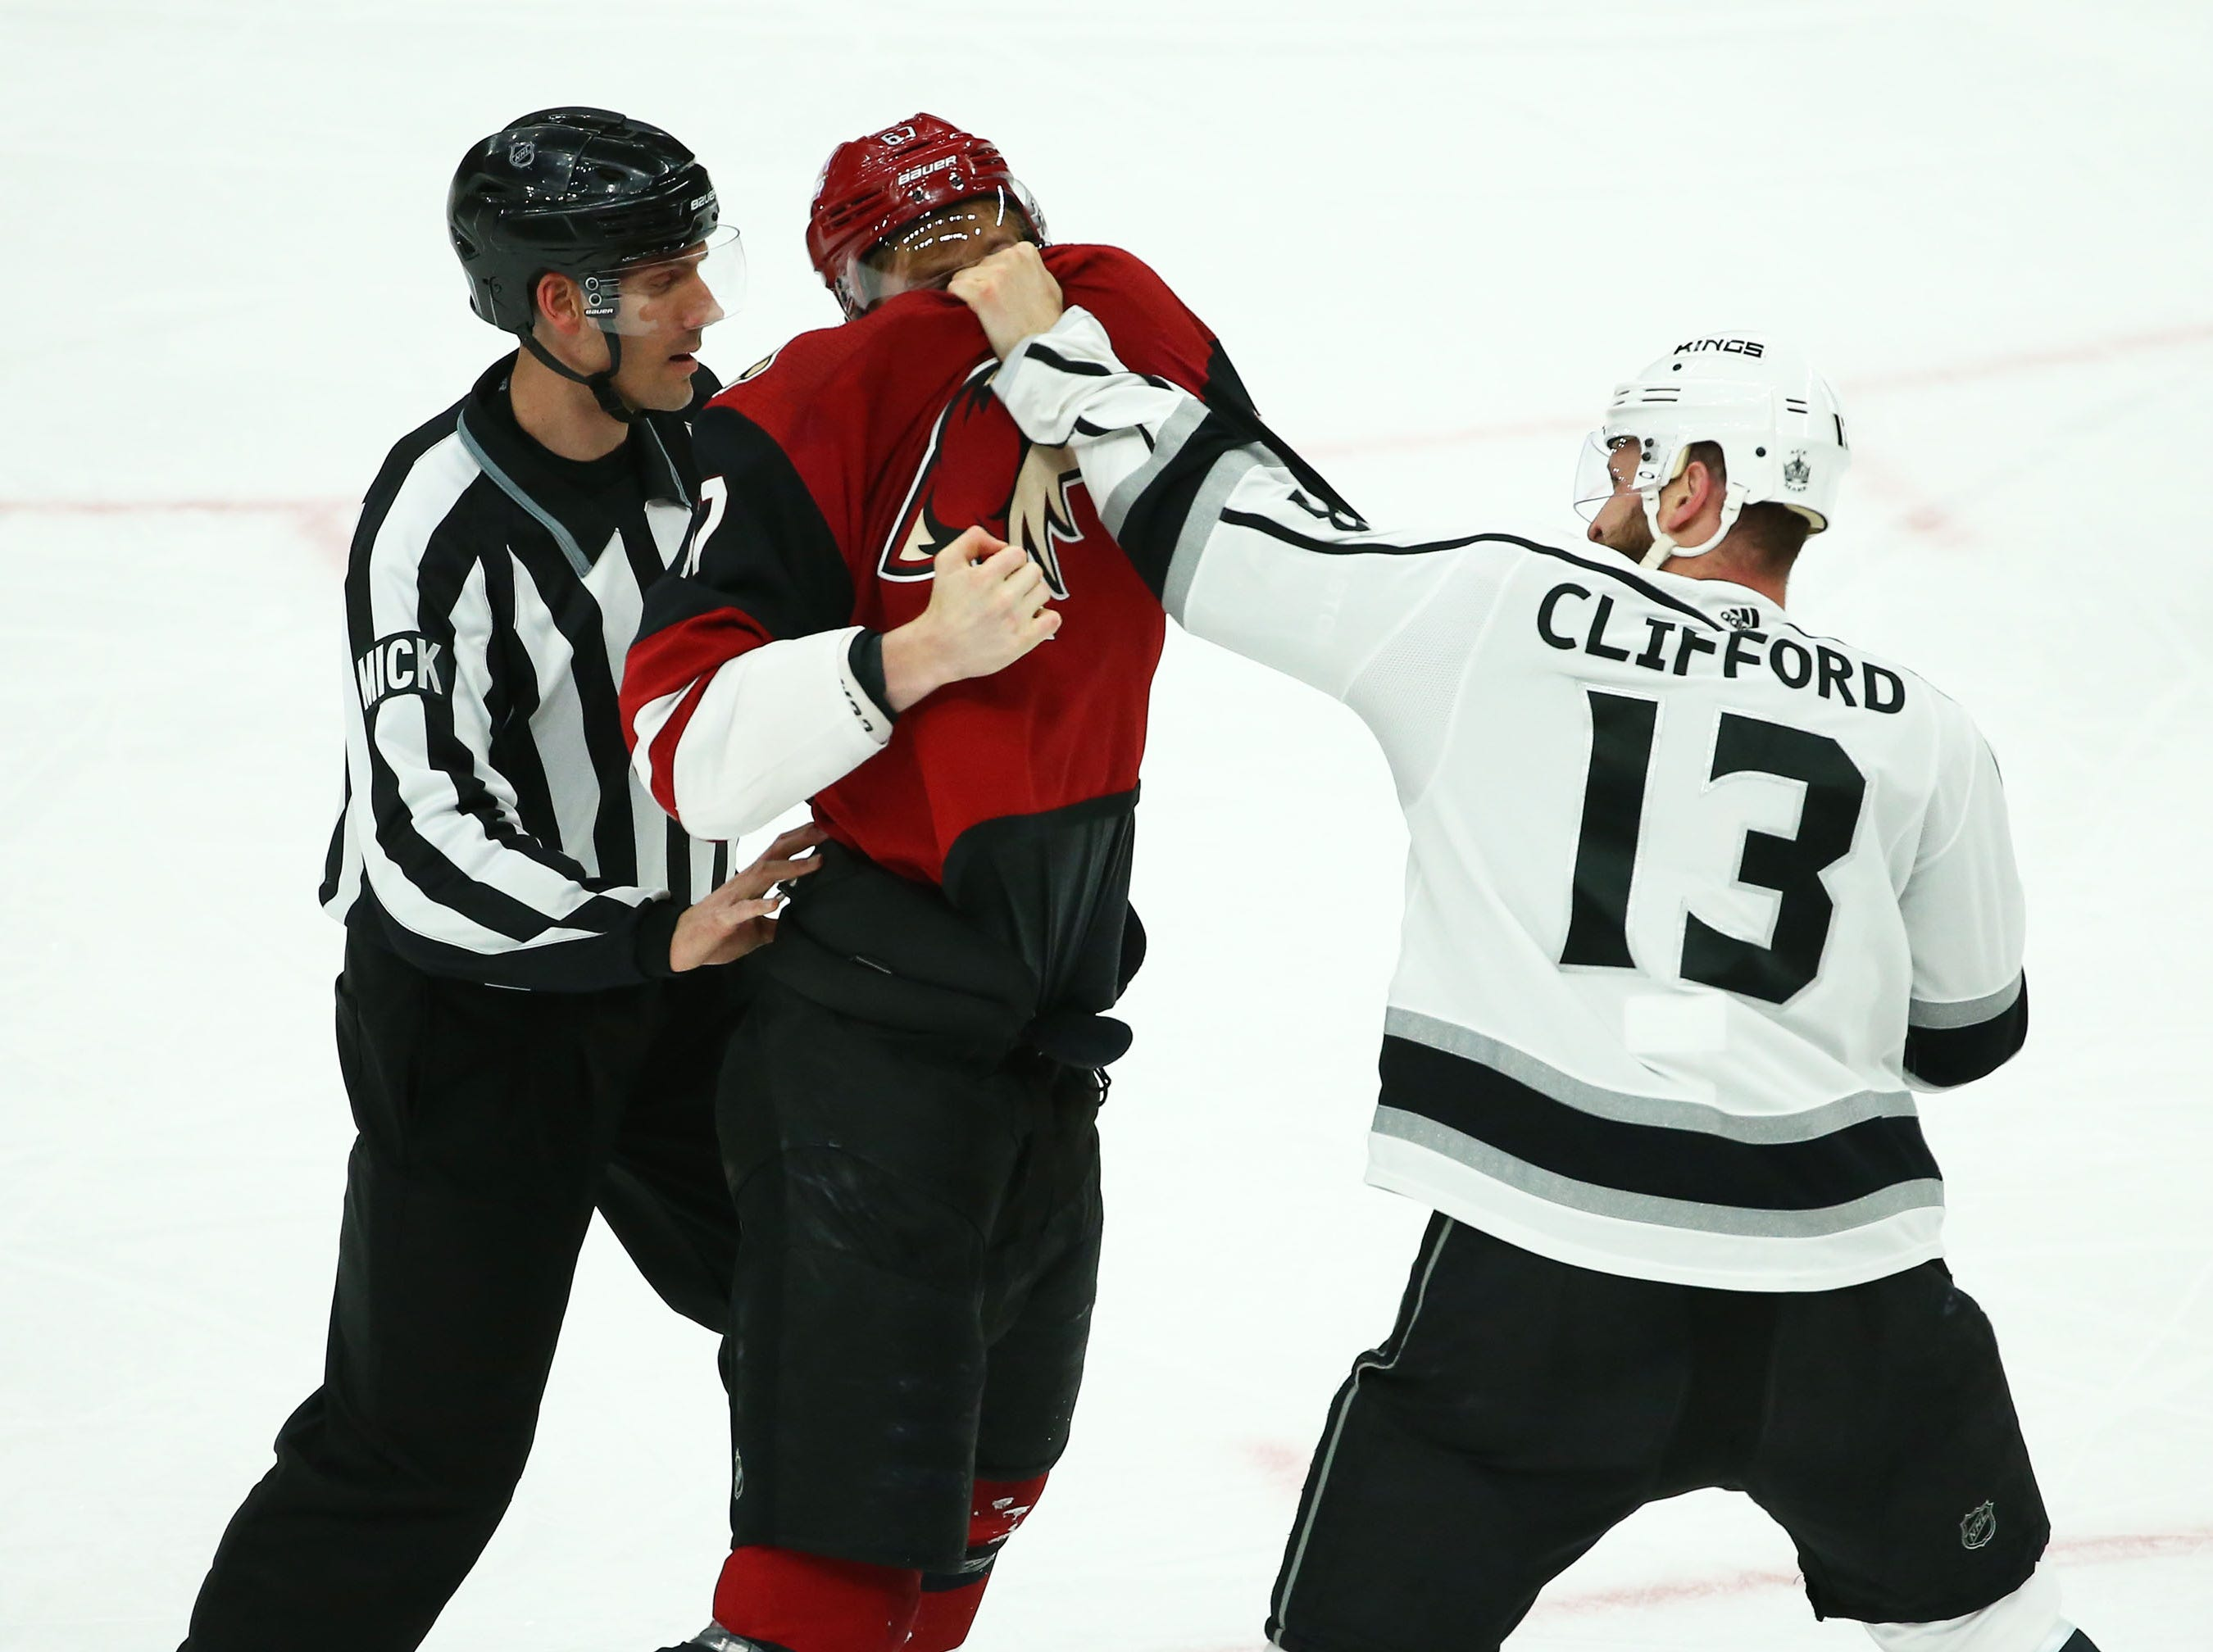 Arizona Coyotes left wing Lawson Crouse (67) fights with Los Angeles Kings left wing Kyle Clifford (13) in the first period on Apr. 2, 2019 at Gila River Arena in Glendale, Ariz.